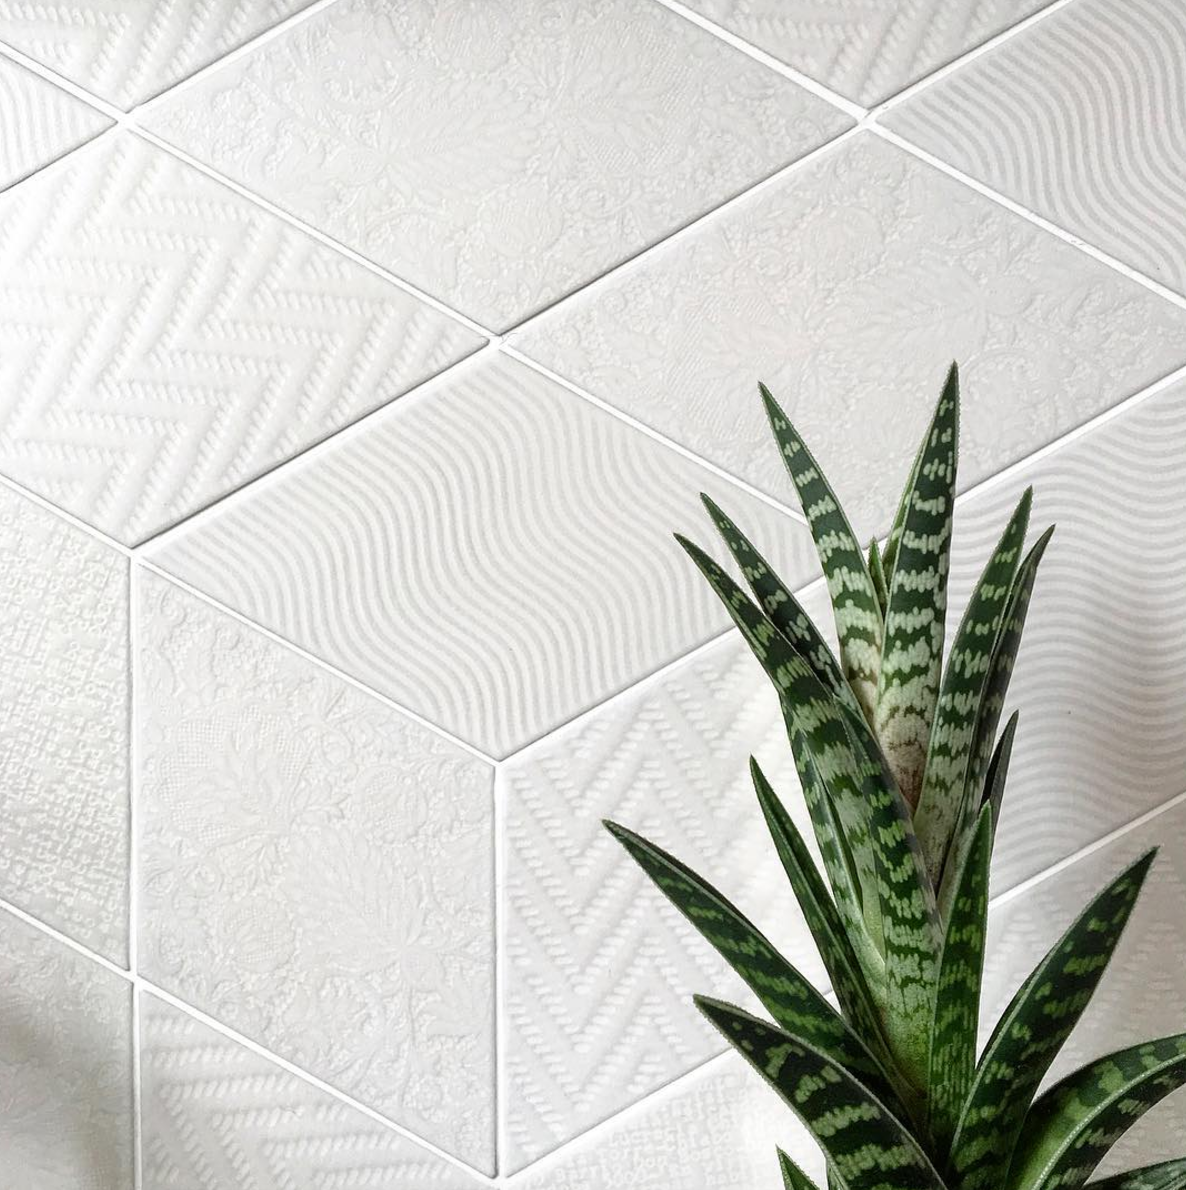 Rhombus White Textured Tile Suitable For Walls And Floors Available In A Range Of Colours Contact Info St Rhombus Tile Textured Tile Backsplash Tiles Texture